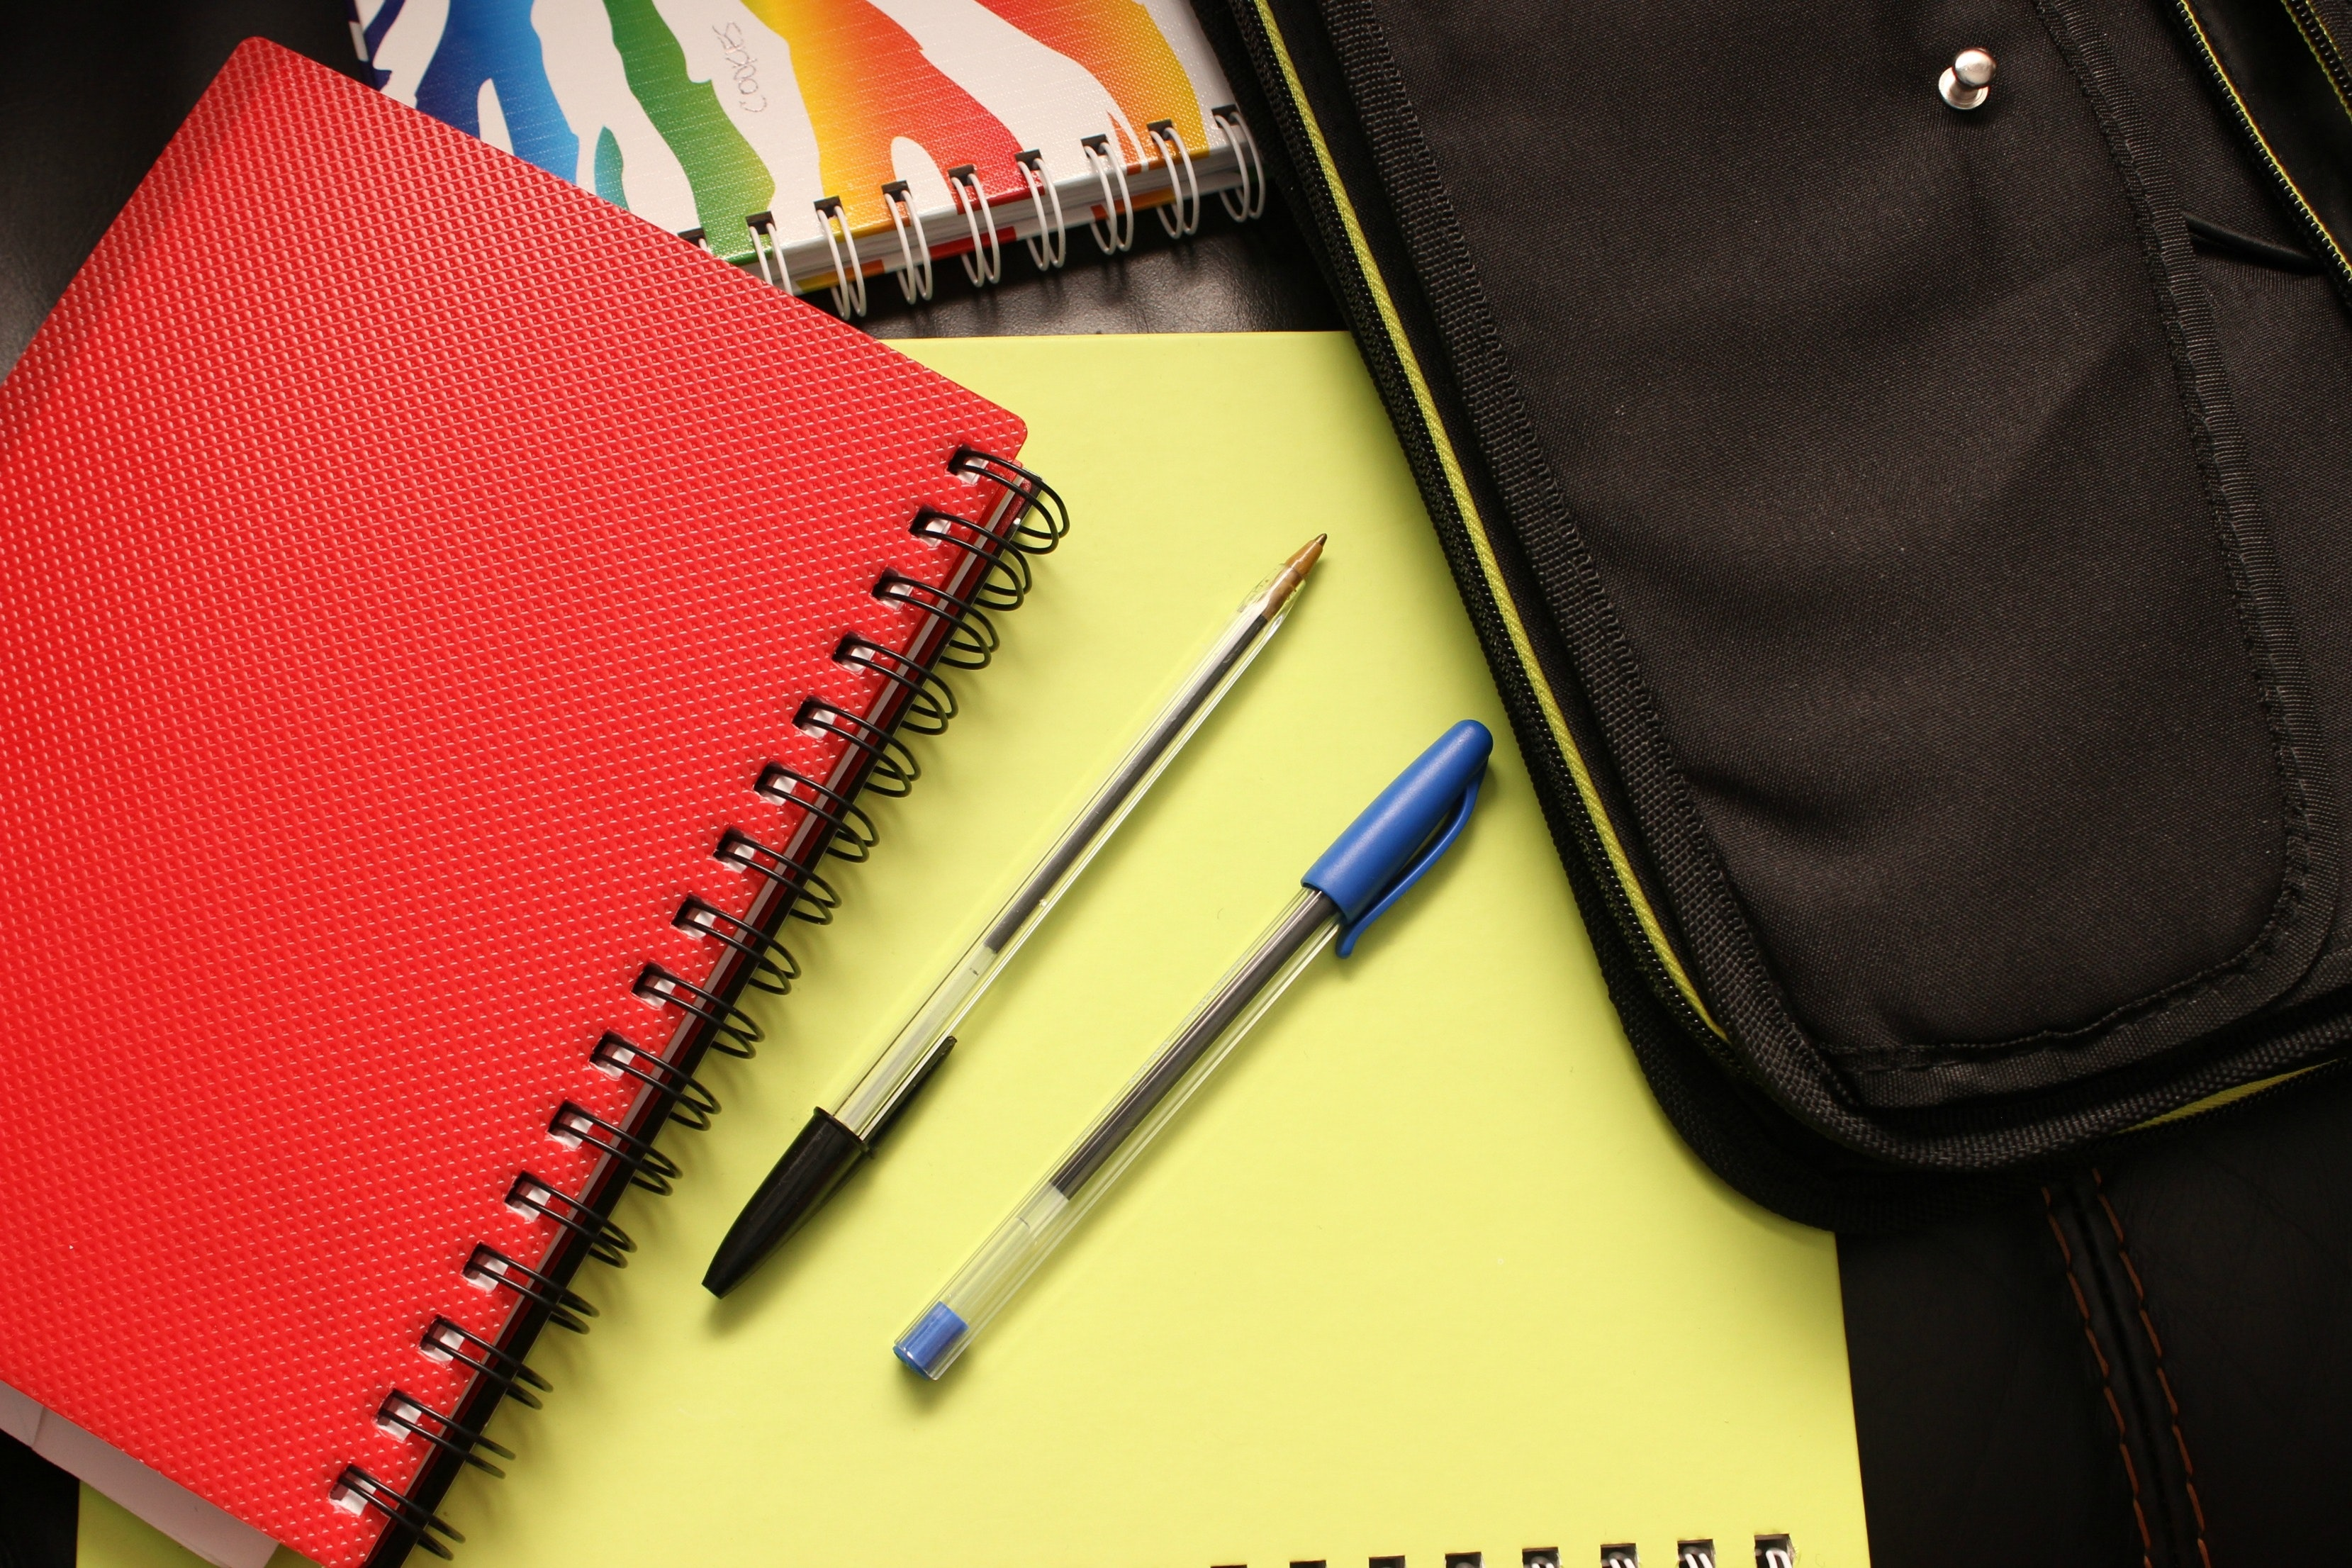 Black and Blue Pens Beside Red Covered Notebook, Bag, Binders, Blank, Document, HQ Photo